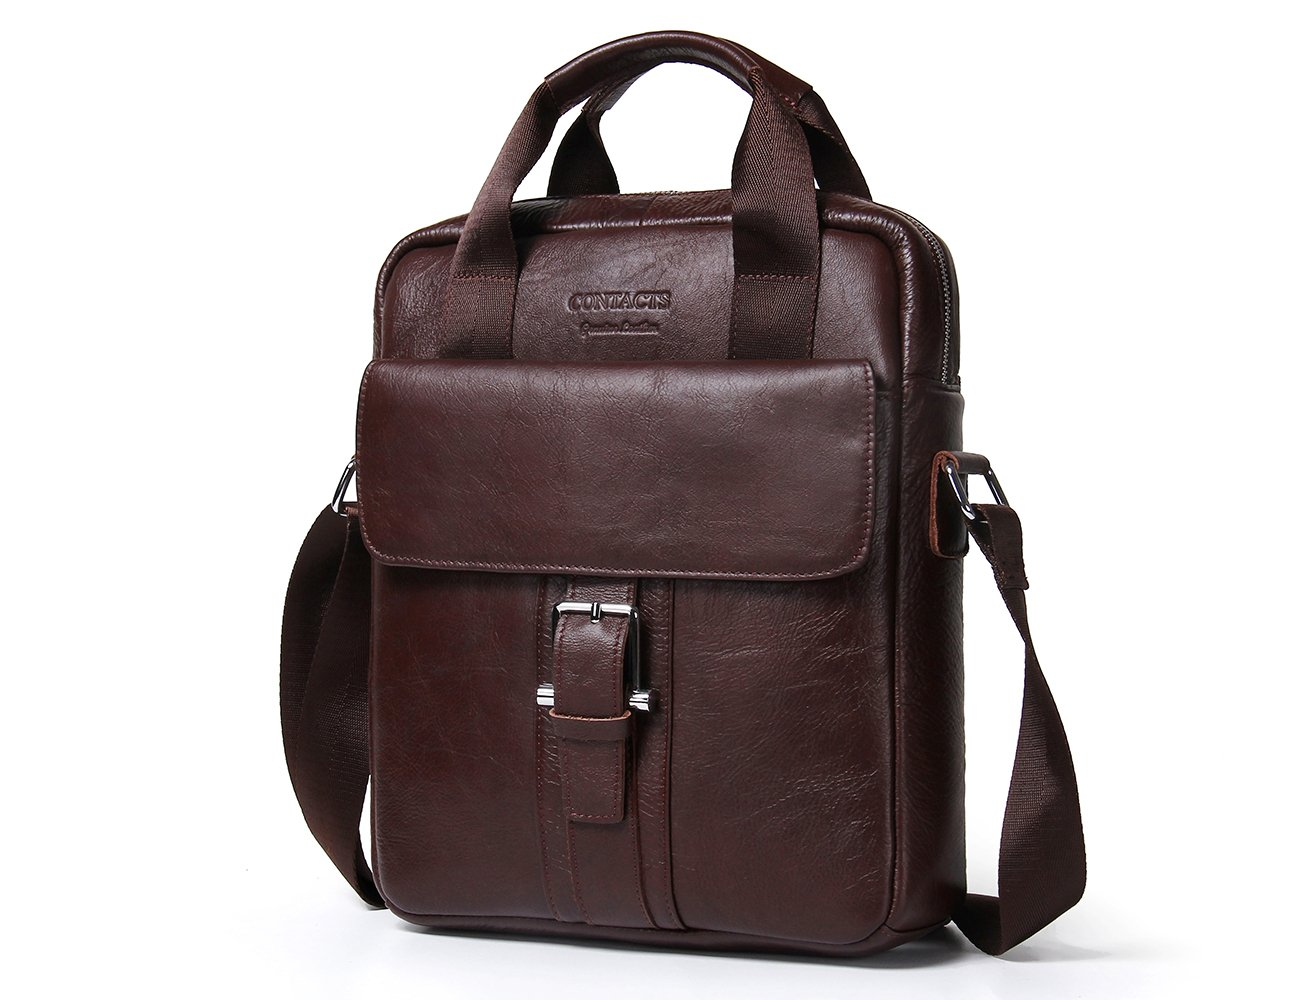 Contacts Fashion Genuine Leather Men Messenger Bags Cowhide Leather Cross Body Bag Briefcase Handbags